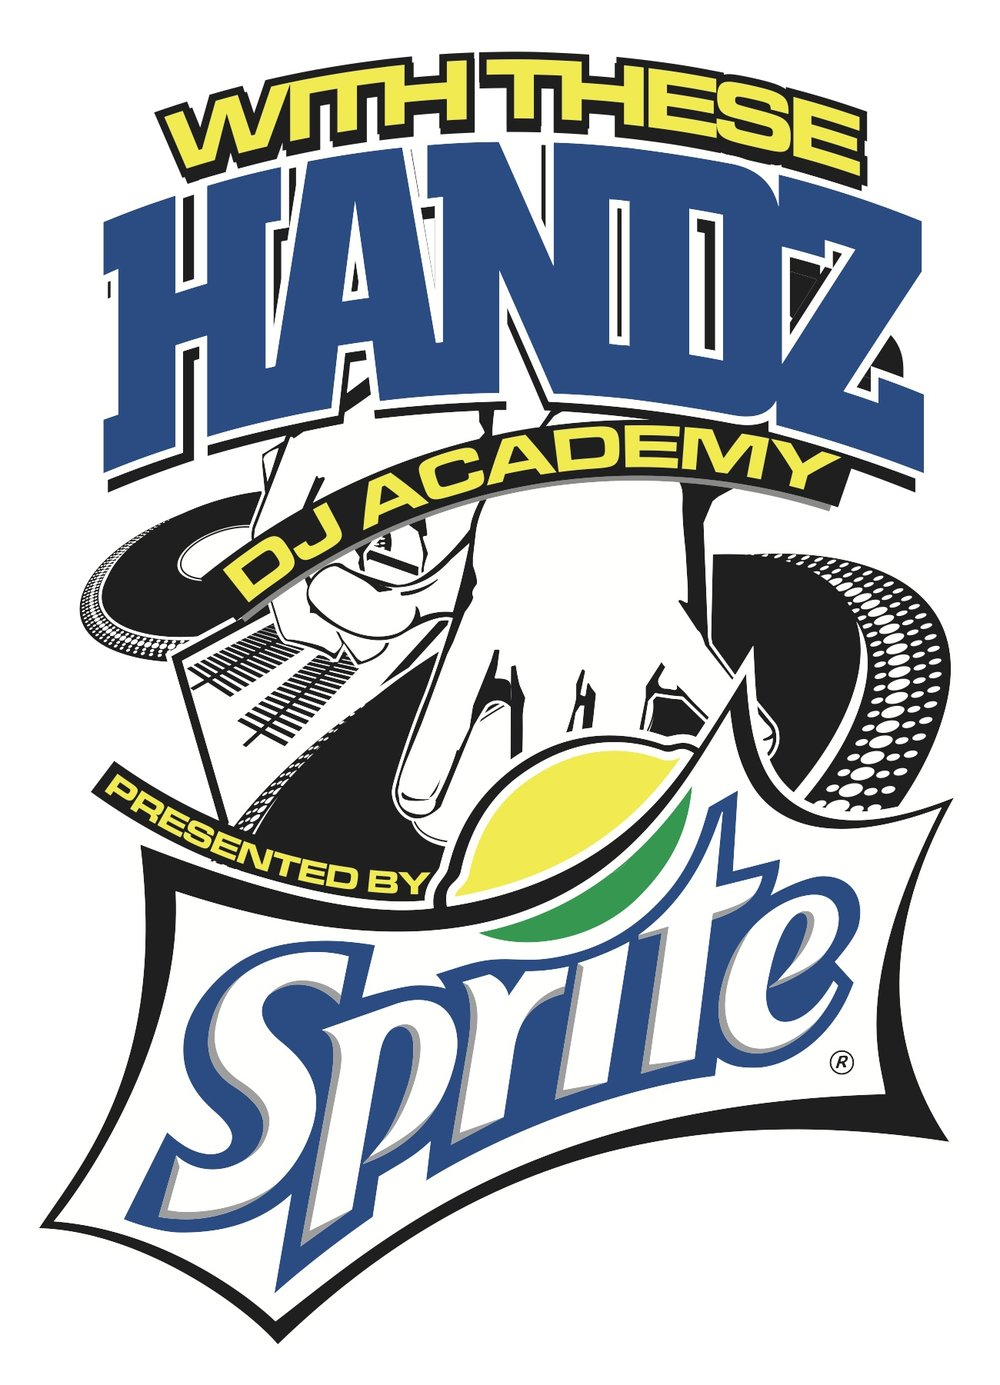 With These Handz DJ Academy presented by SPRITE